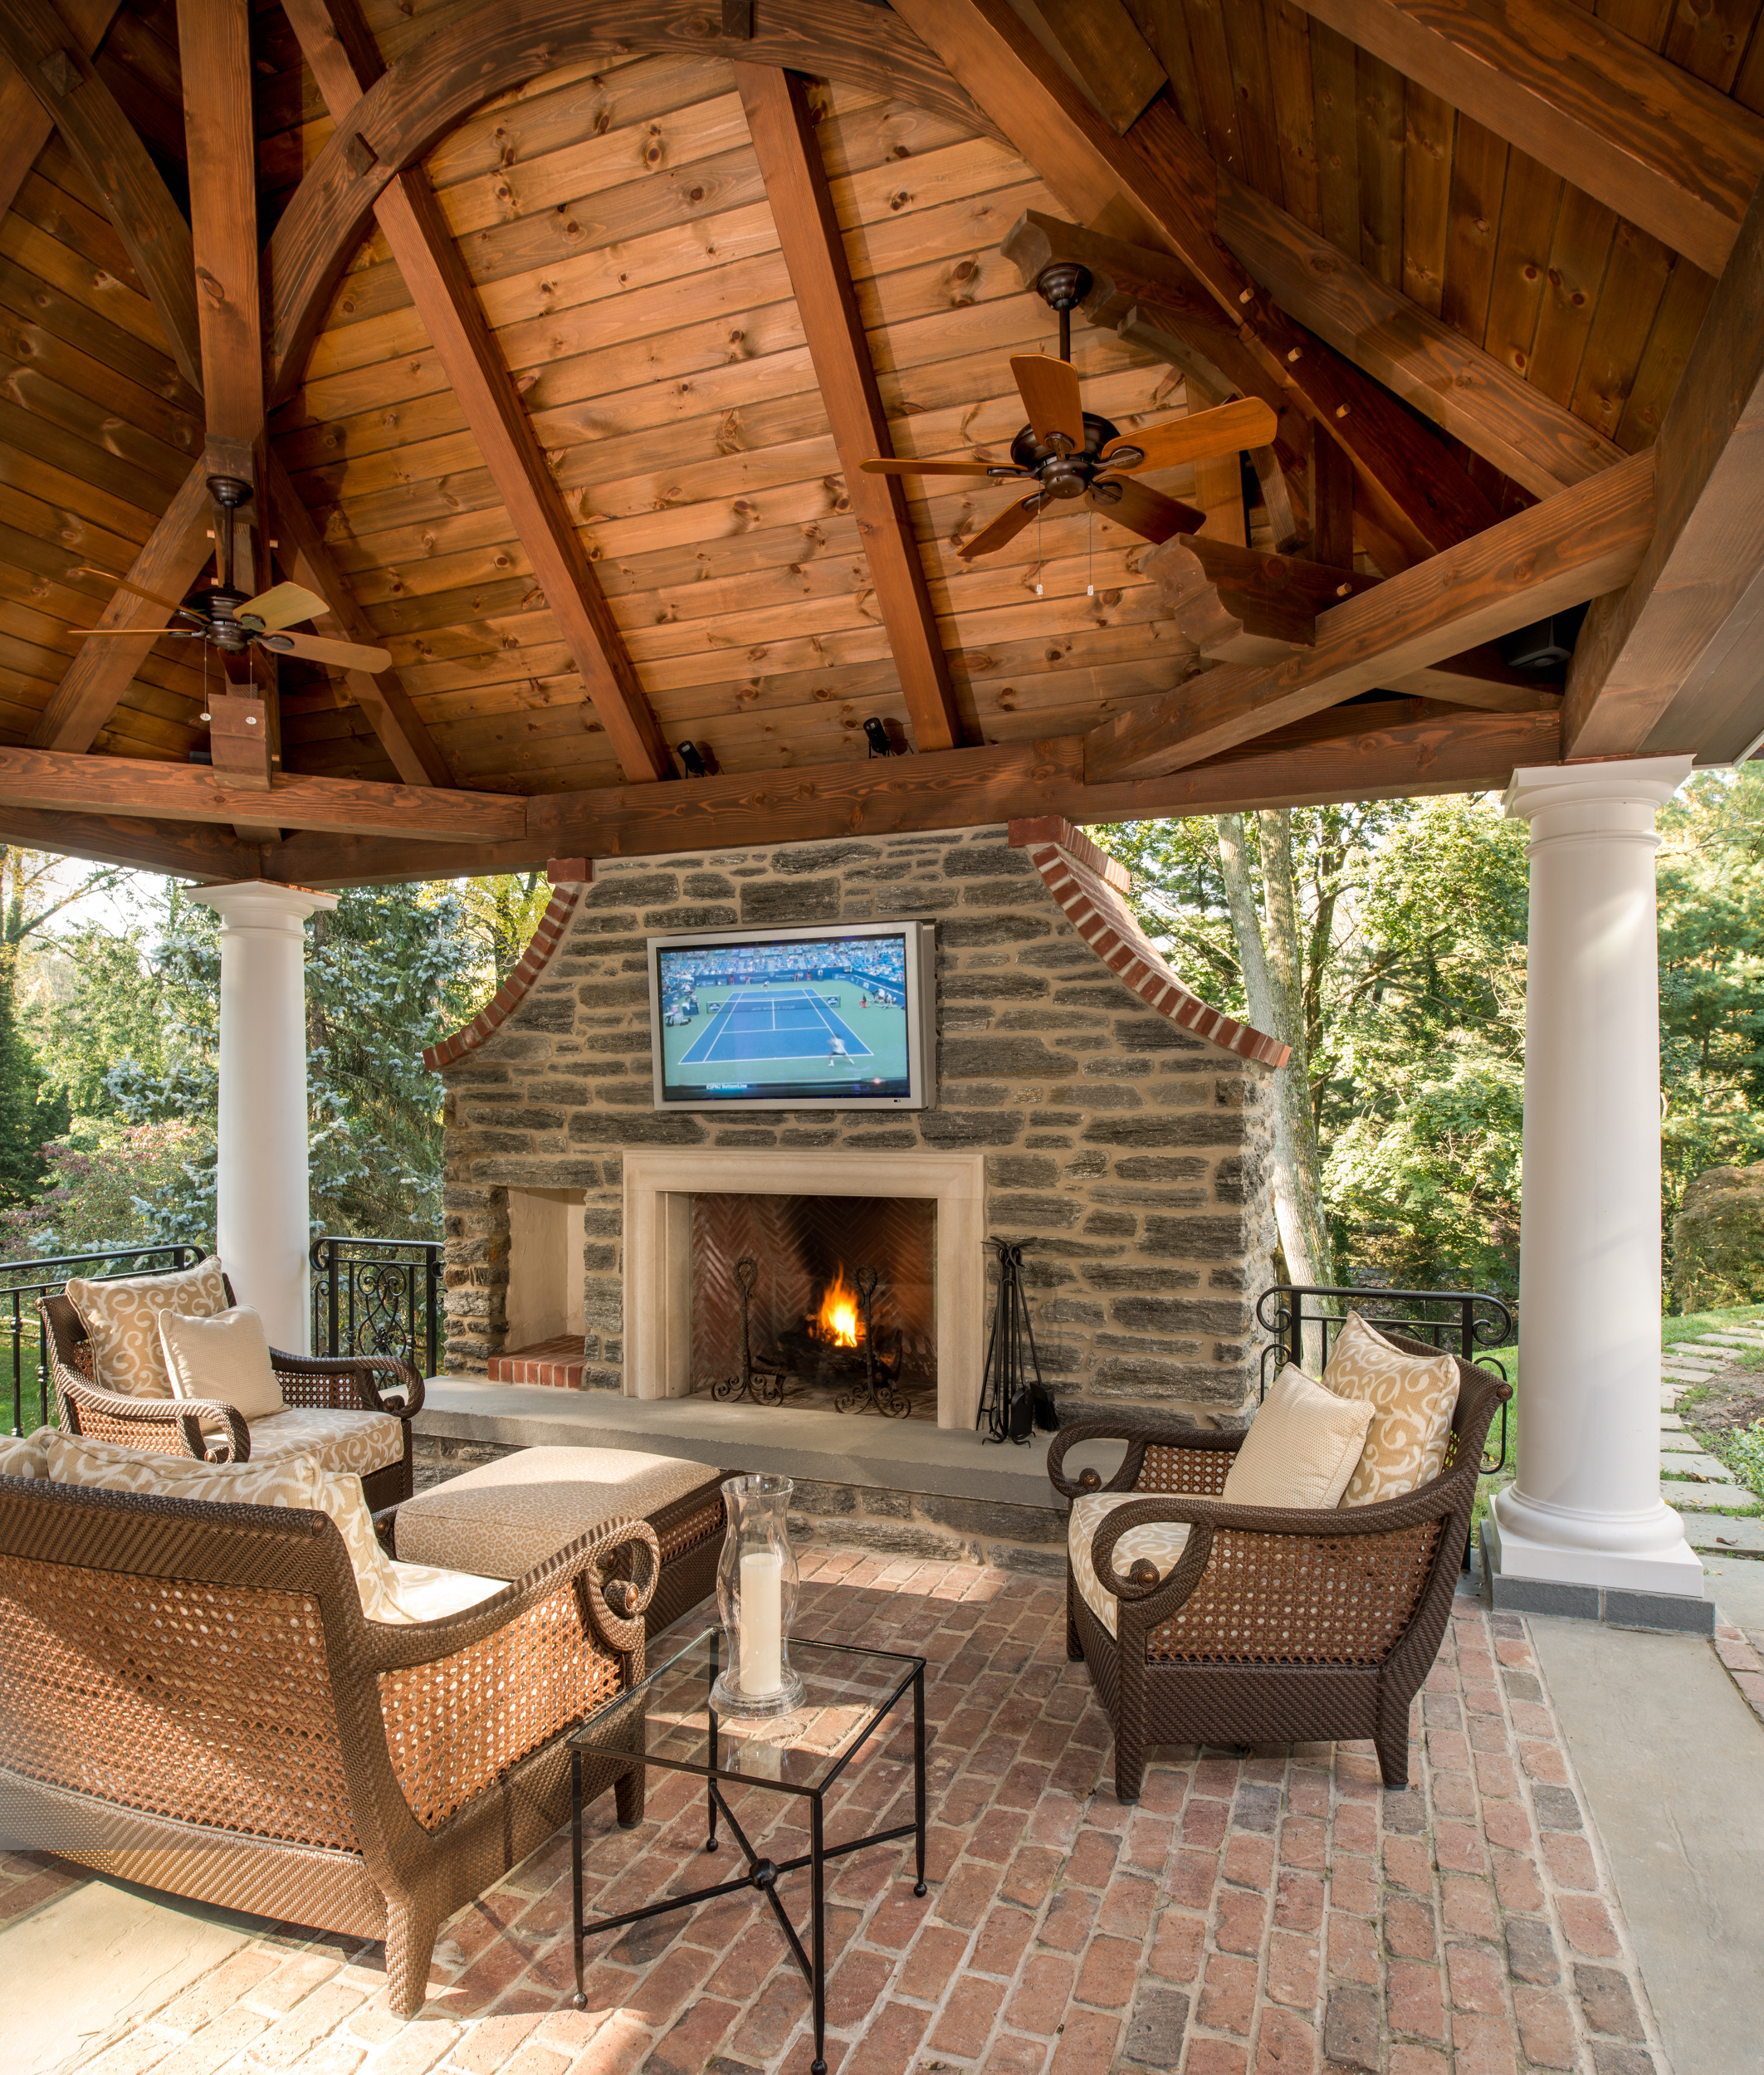 Timber frame pool house archives hugh lofting timber Deck fireplace designs